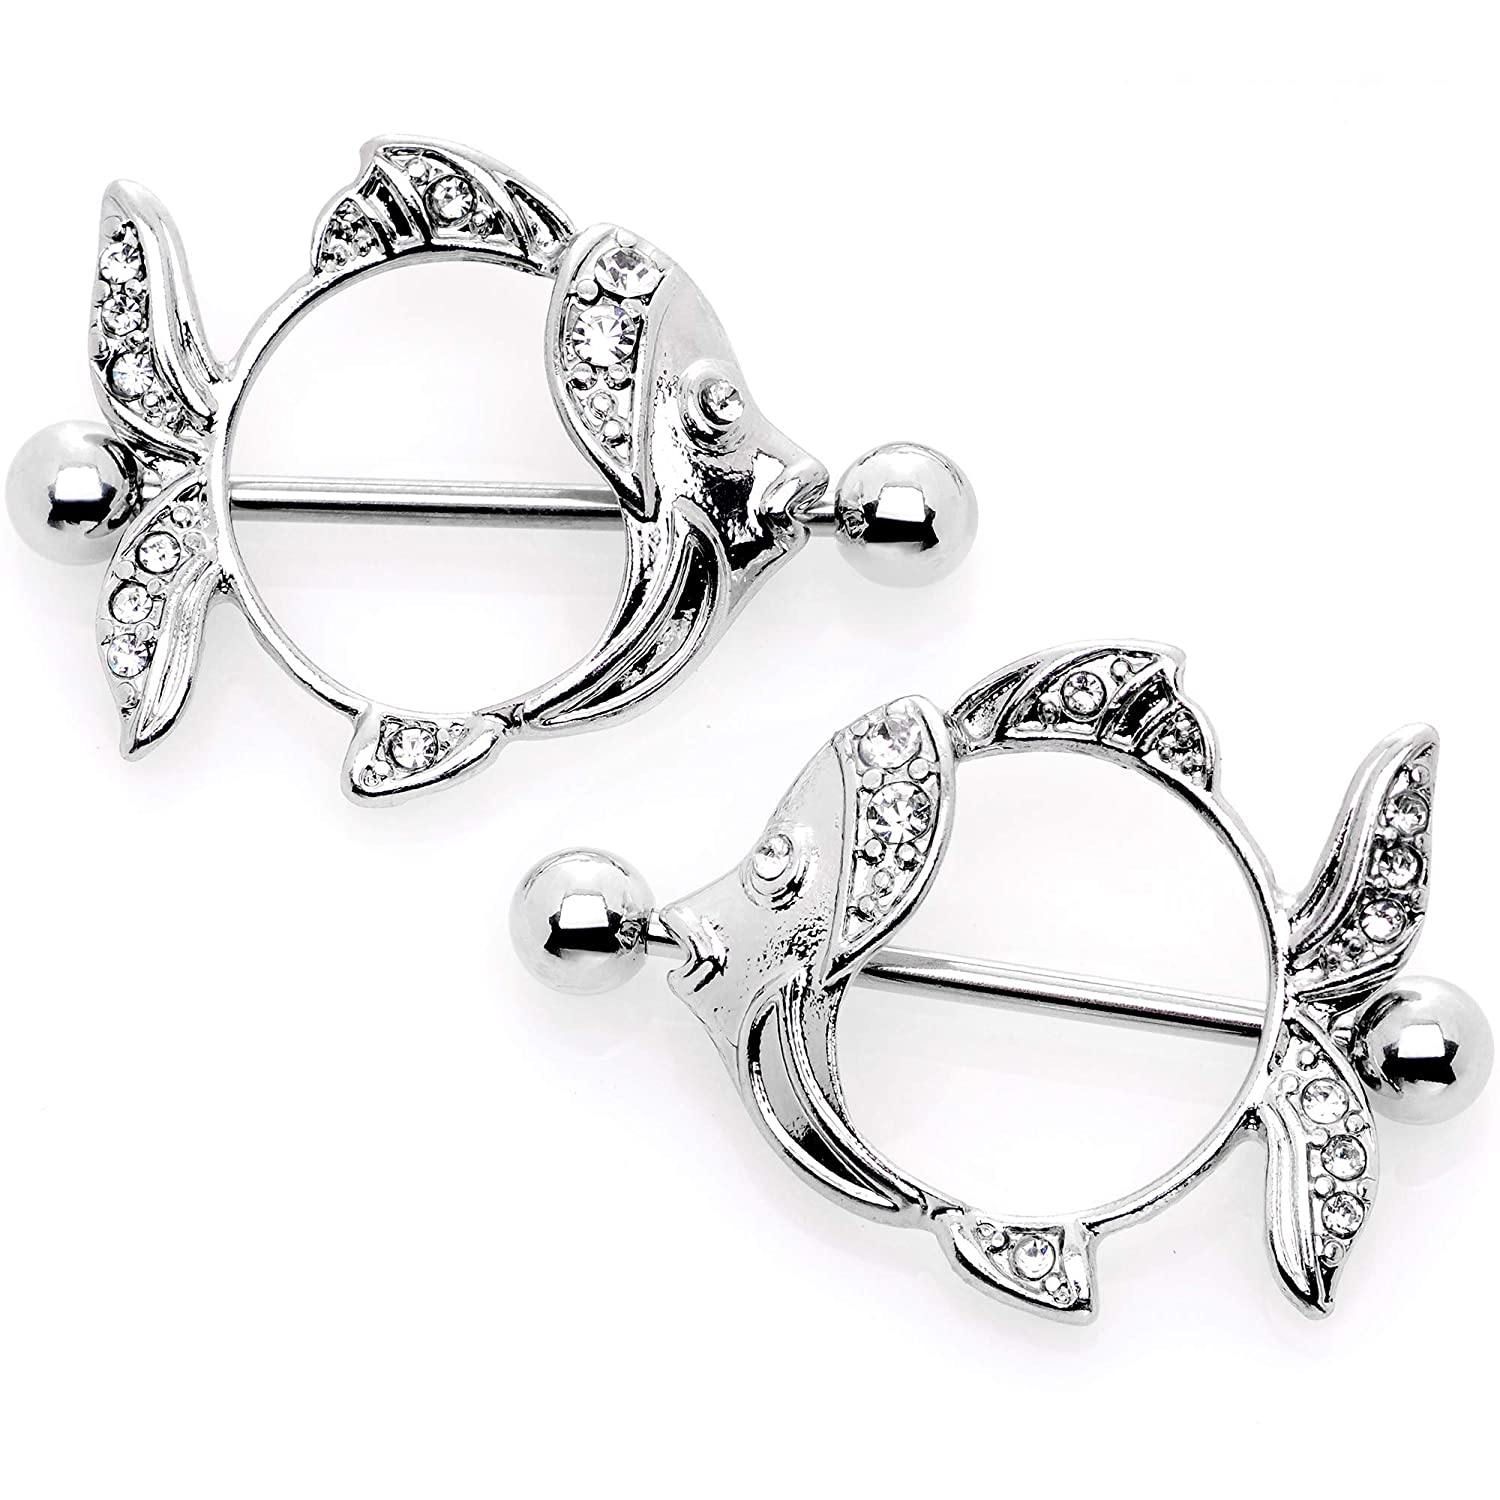 Body Candy 14G Womens Nipplerings Piercing 316L Stainless Steel 2Pc Clear Accent Fish Nipple Shield Set 14mm